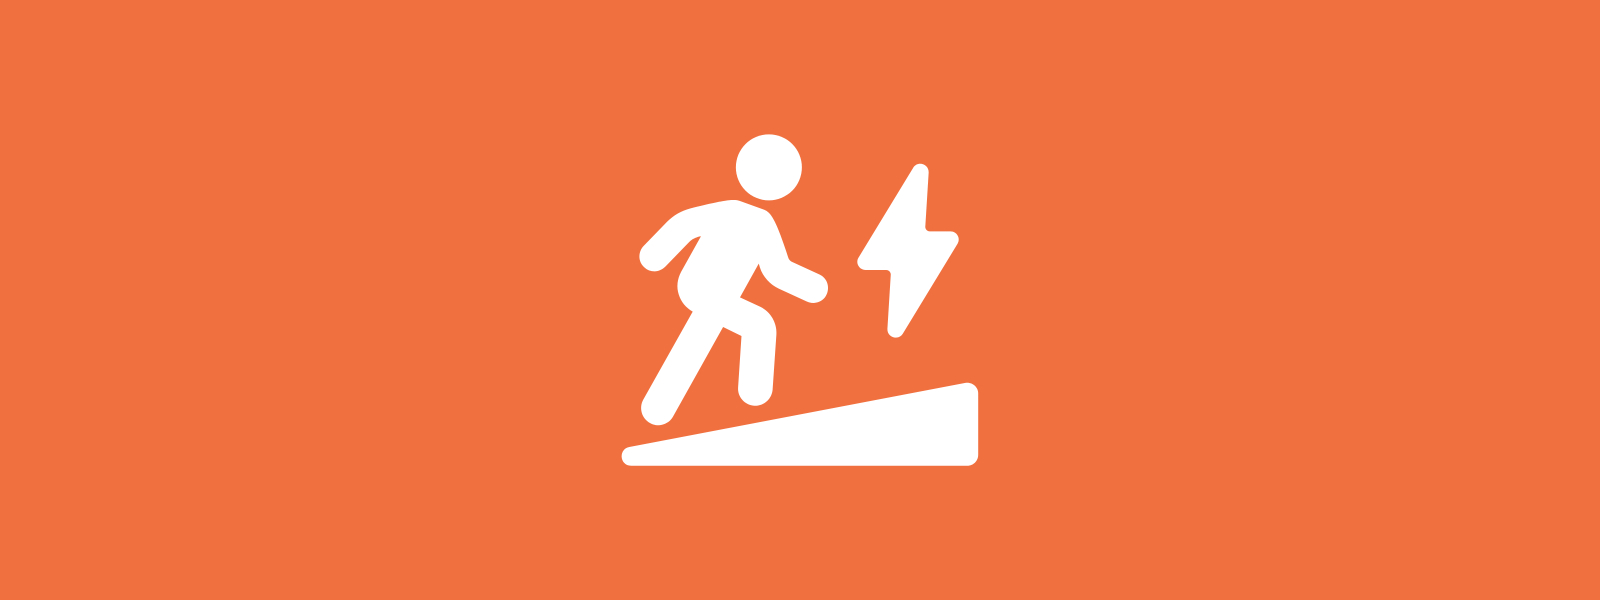 Icon background of person stepping up an incline